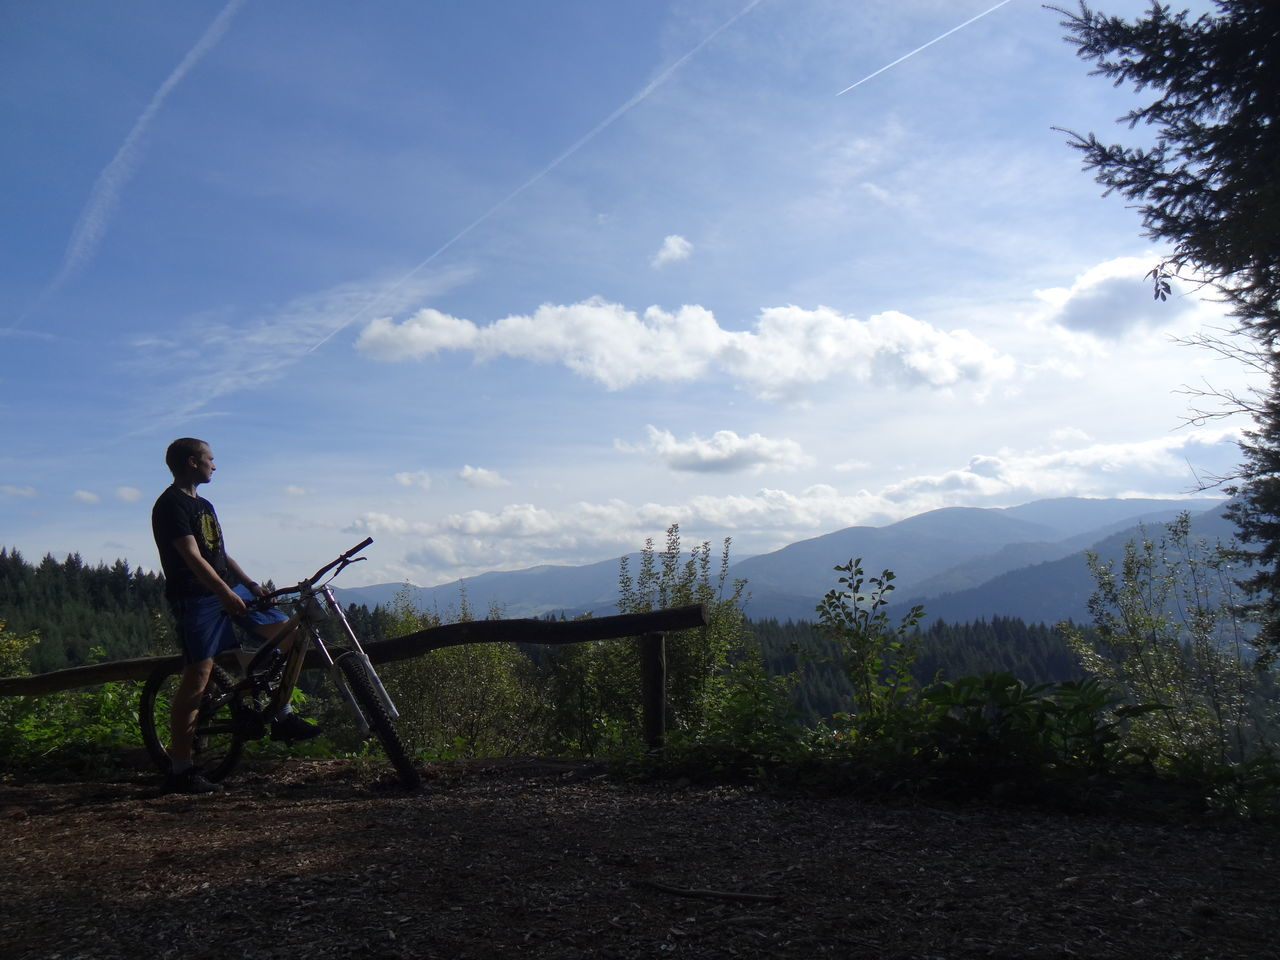 Beauty In Nature Bicycle Blackforest Borderline Cloud - Sky Downhill Freedom Freeride Freiburg Grass Leisure Activity Nature One Person Outdoors Pedal Rosskopf Sitting Sky Sport Young Adult Yt Industries